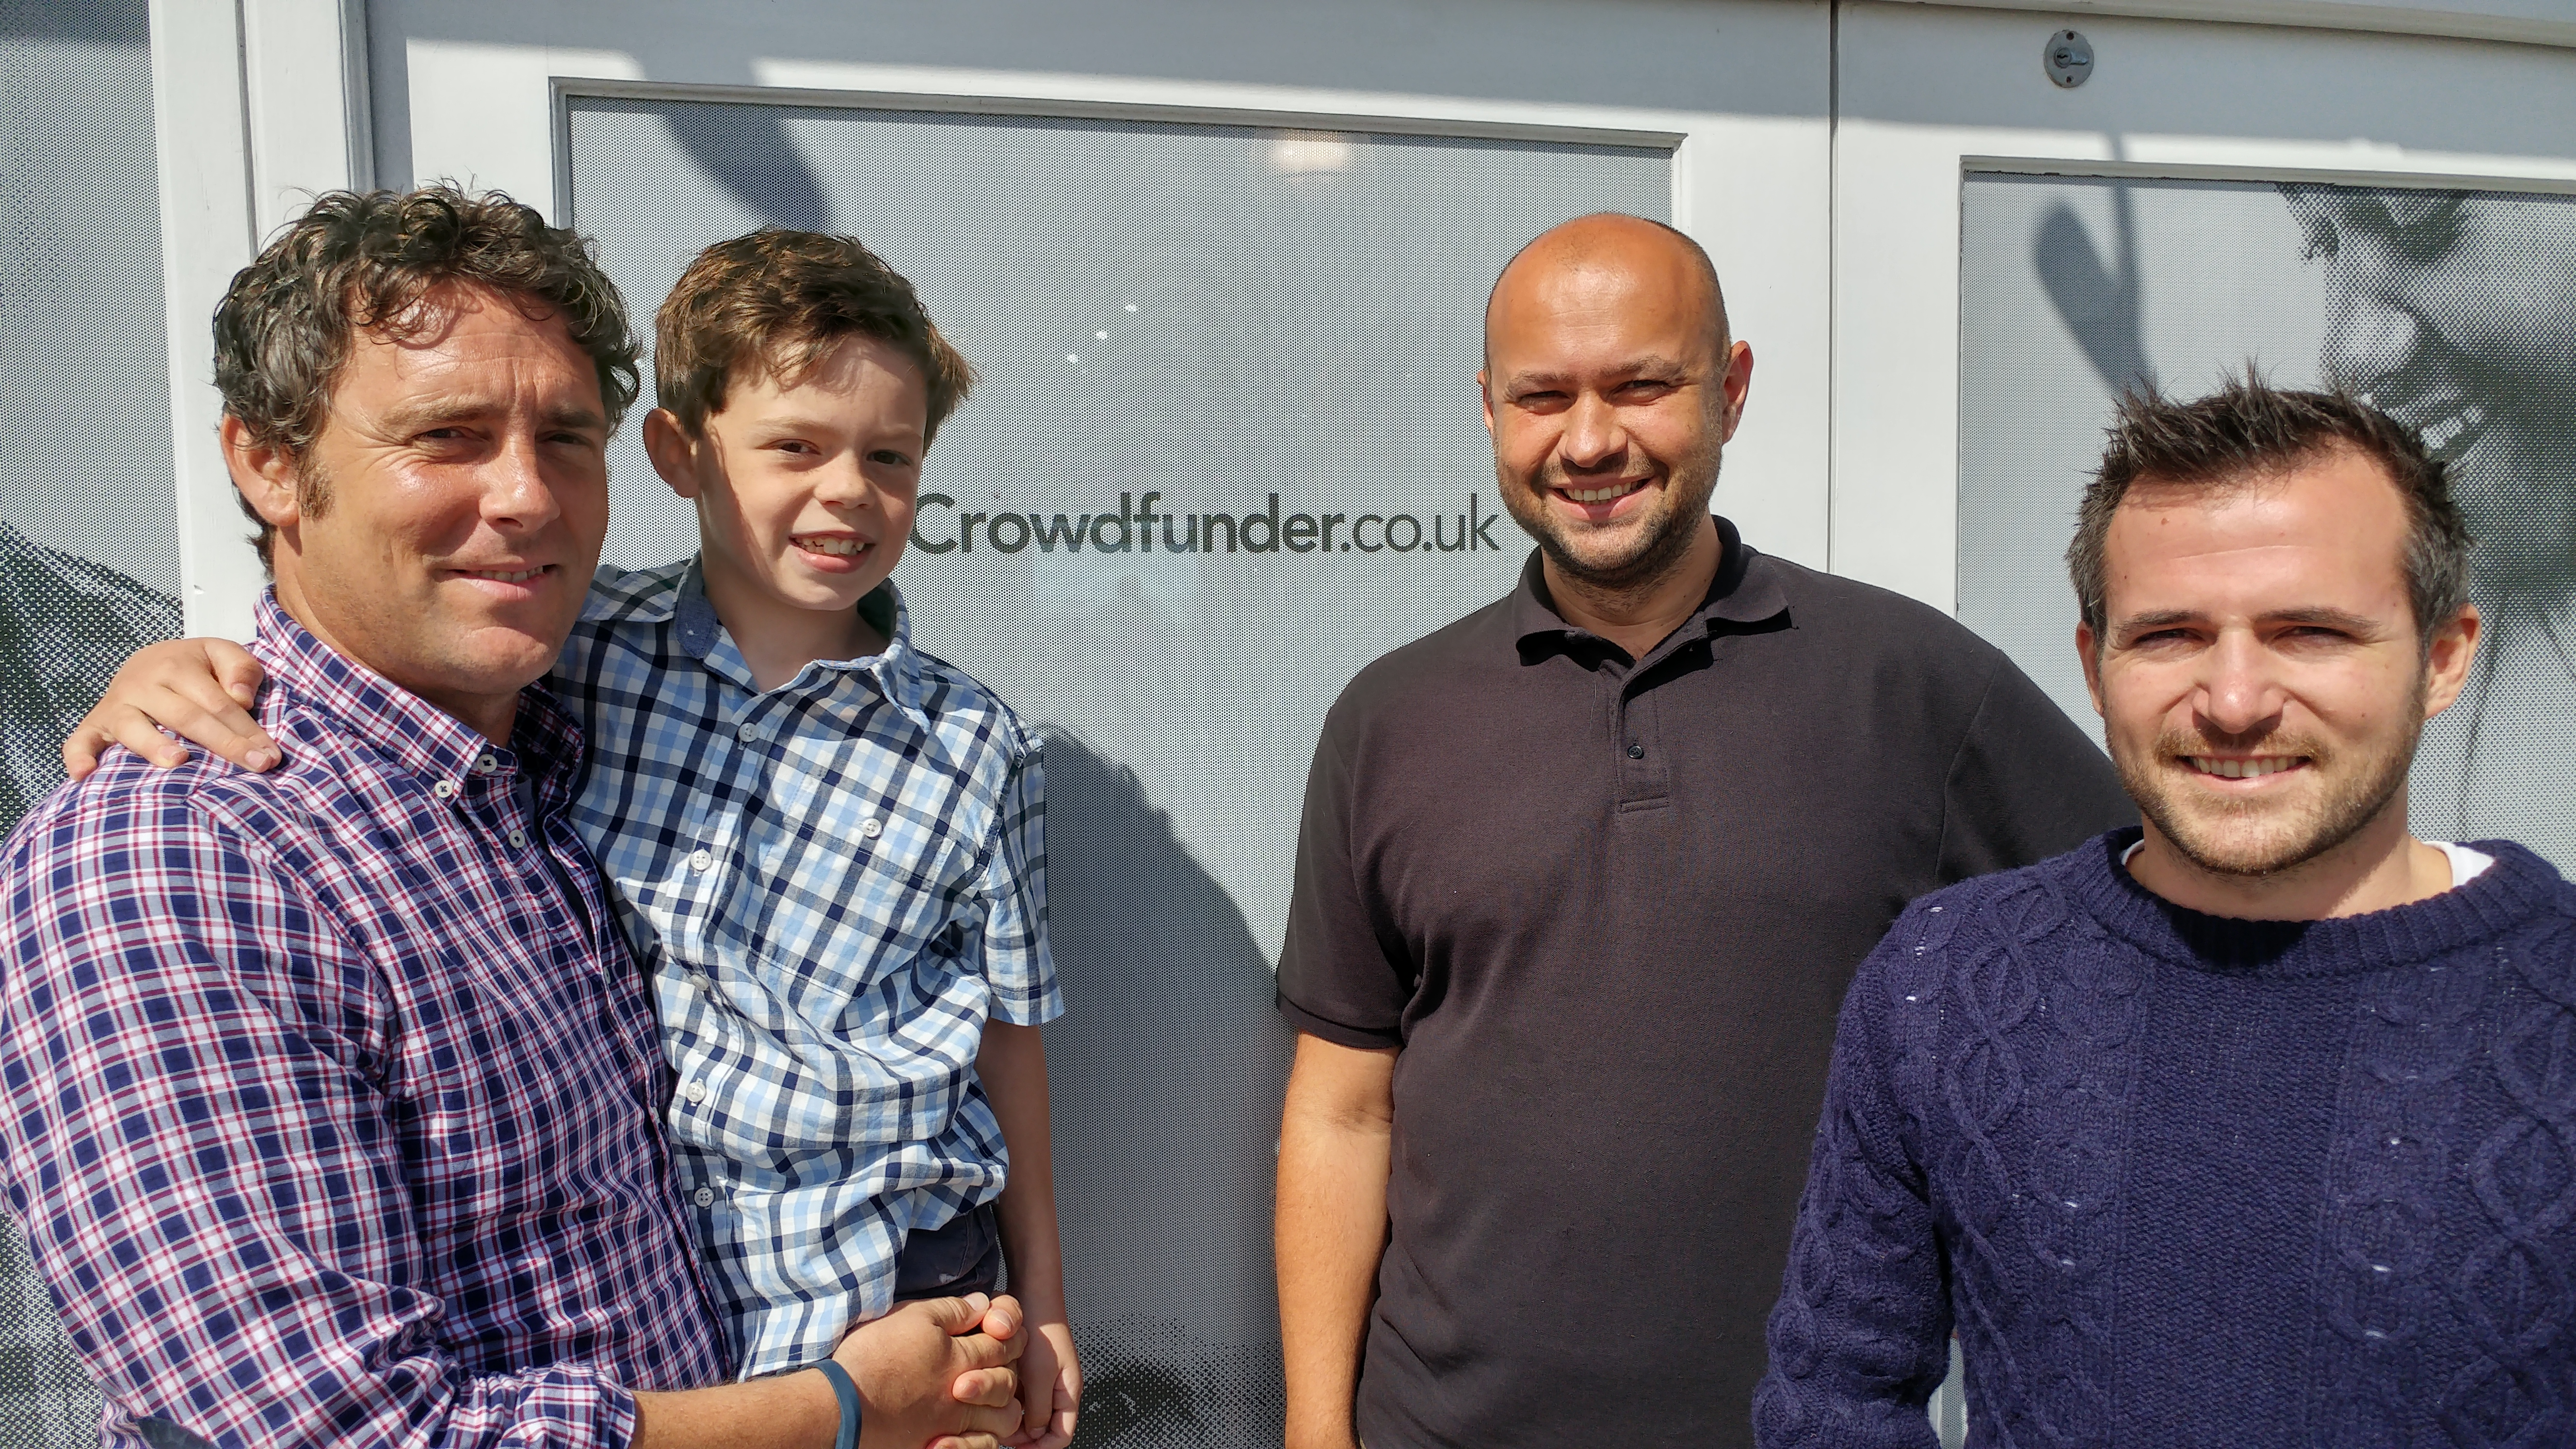 Aug 17 – Meeting with Crowdfunder